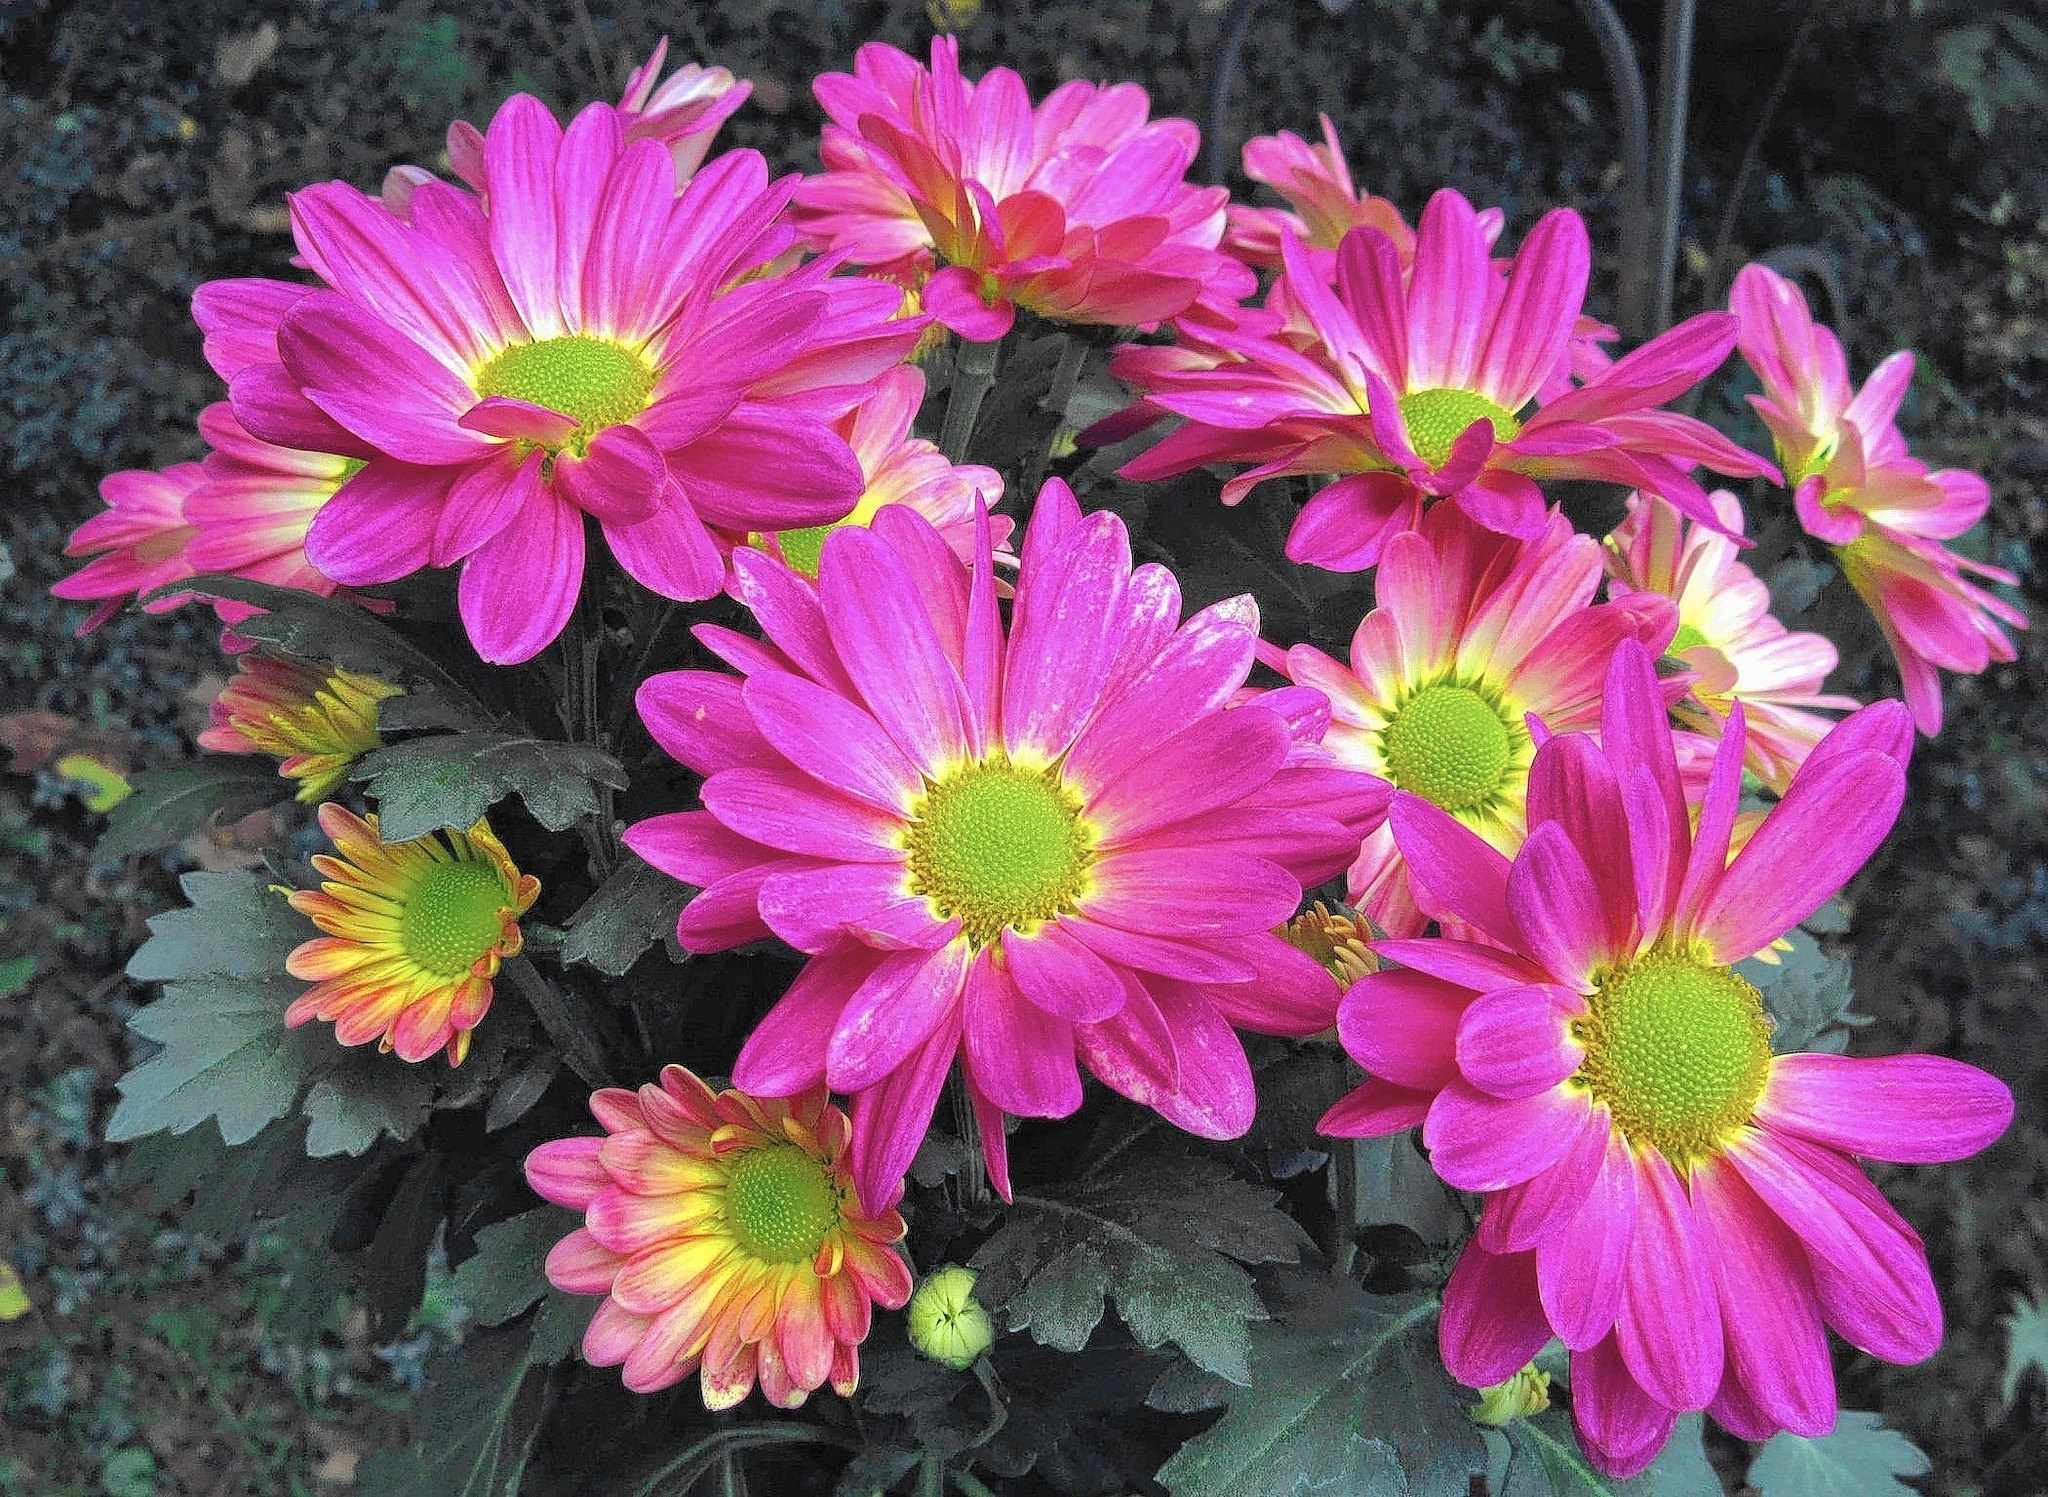 Tips For Keeping Hardy Fall Mums Alive For The Spring The Morning Call